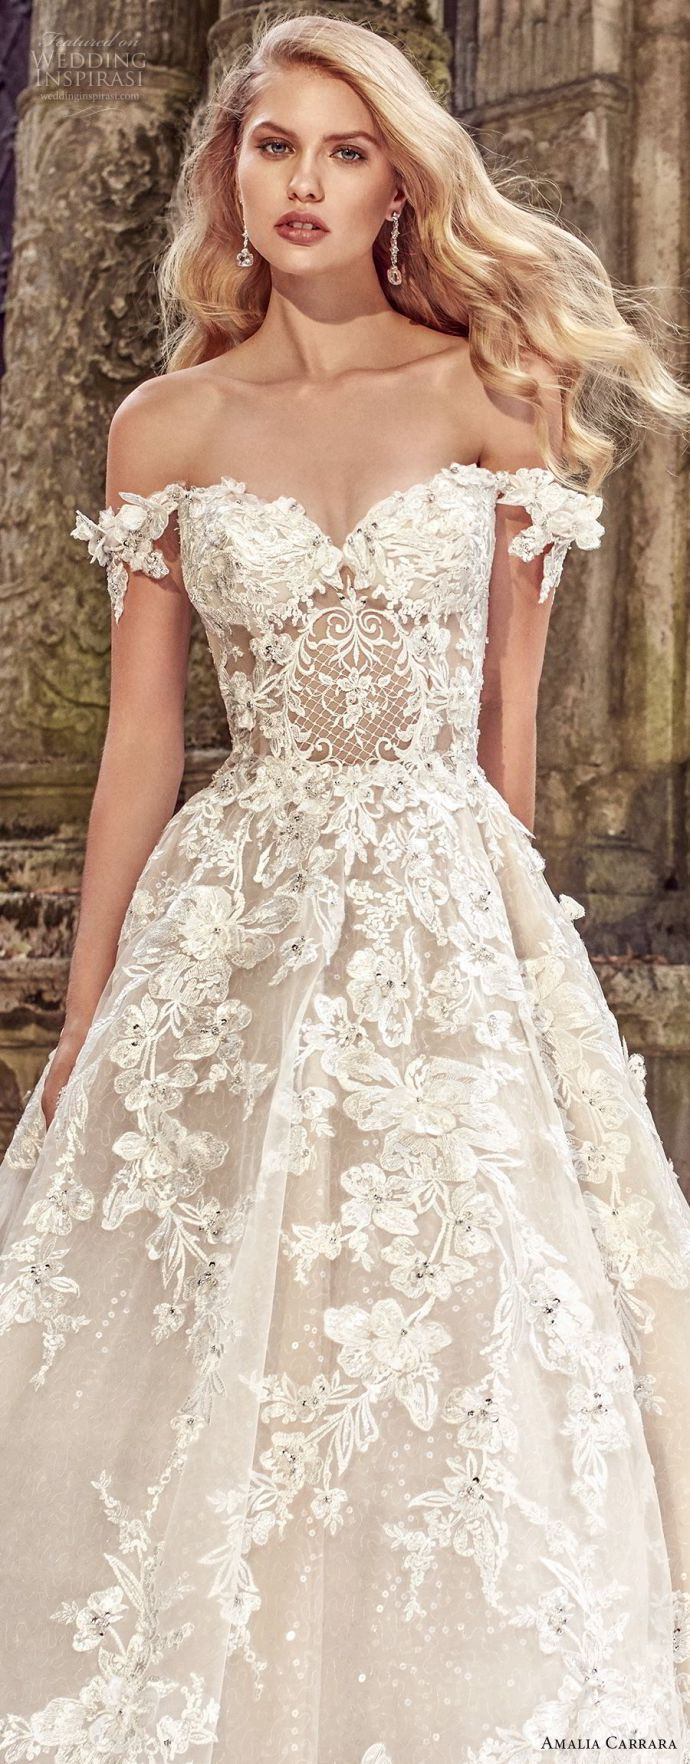 The lace on this beautifully designed wedding gown makes it so romantic.